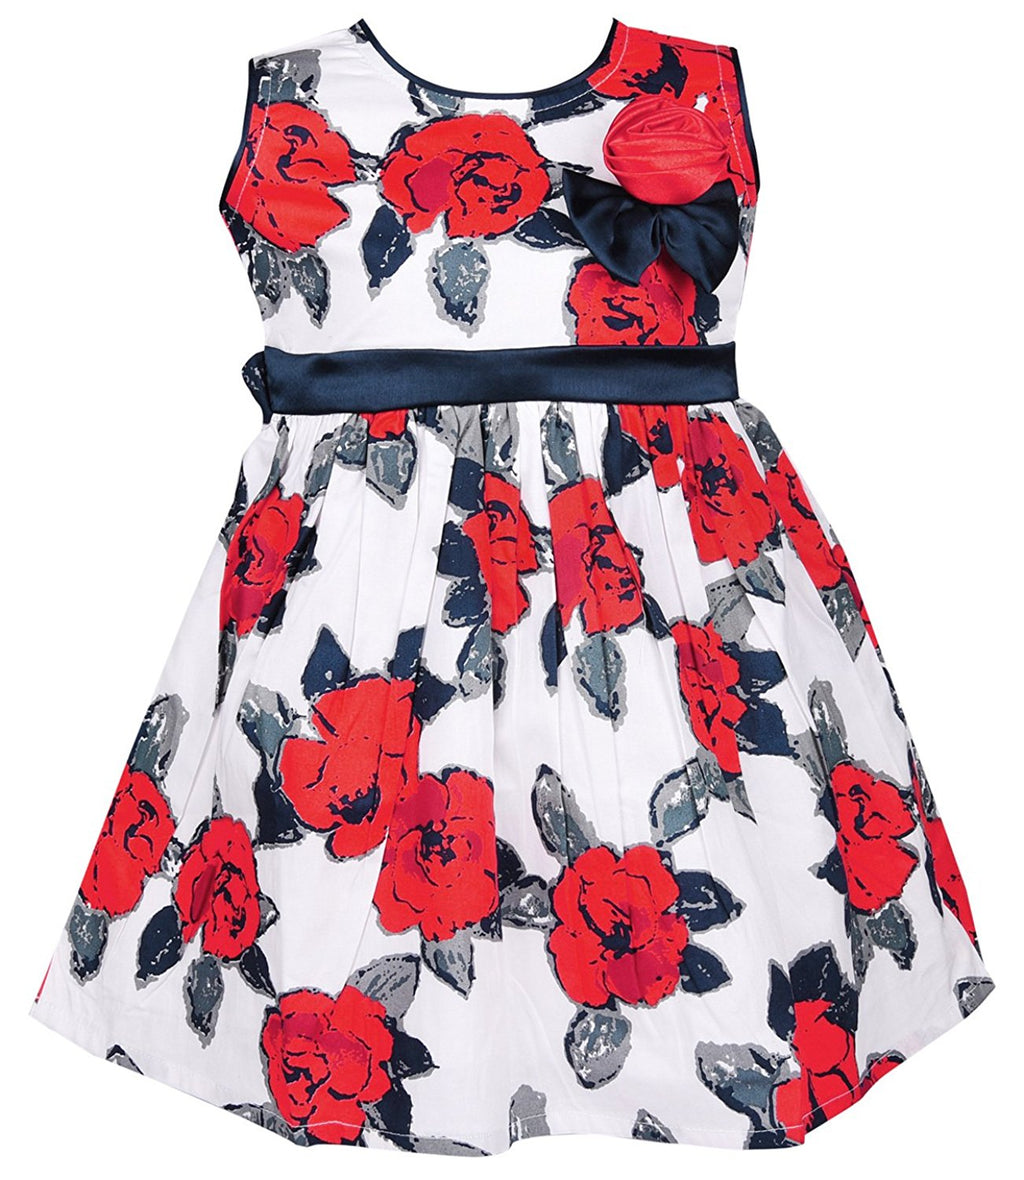 Baby Girls Cotton Frock Dress DN CTN152rd -  Wish Karo Dresses